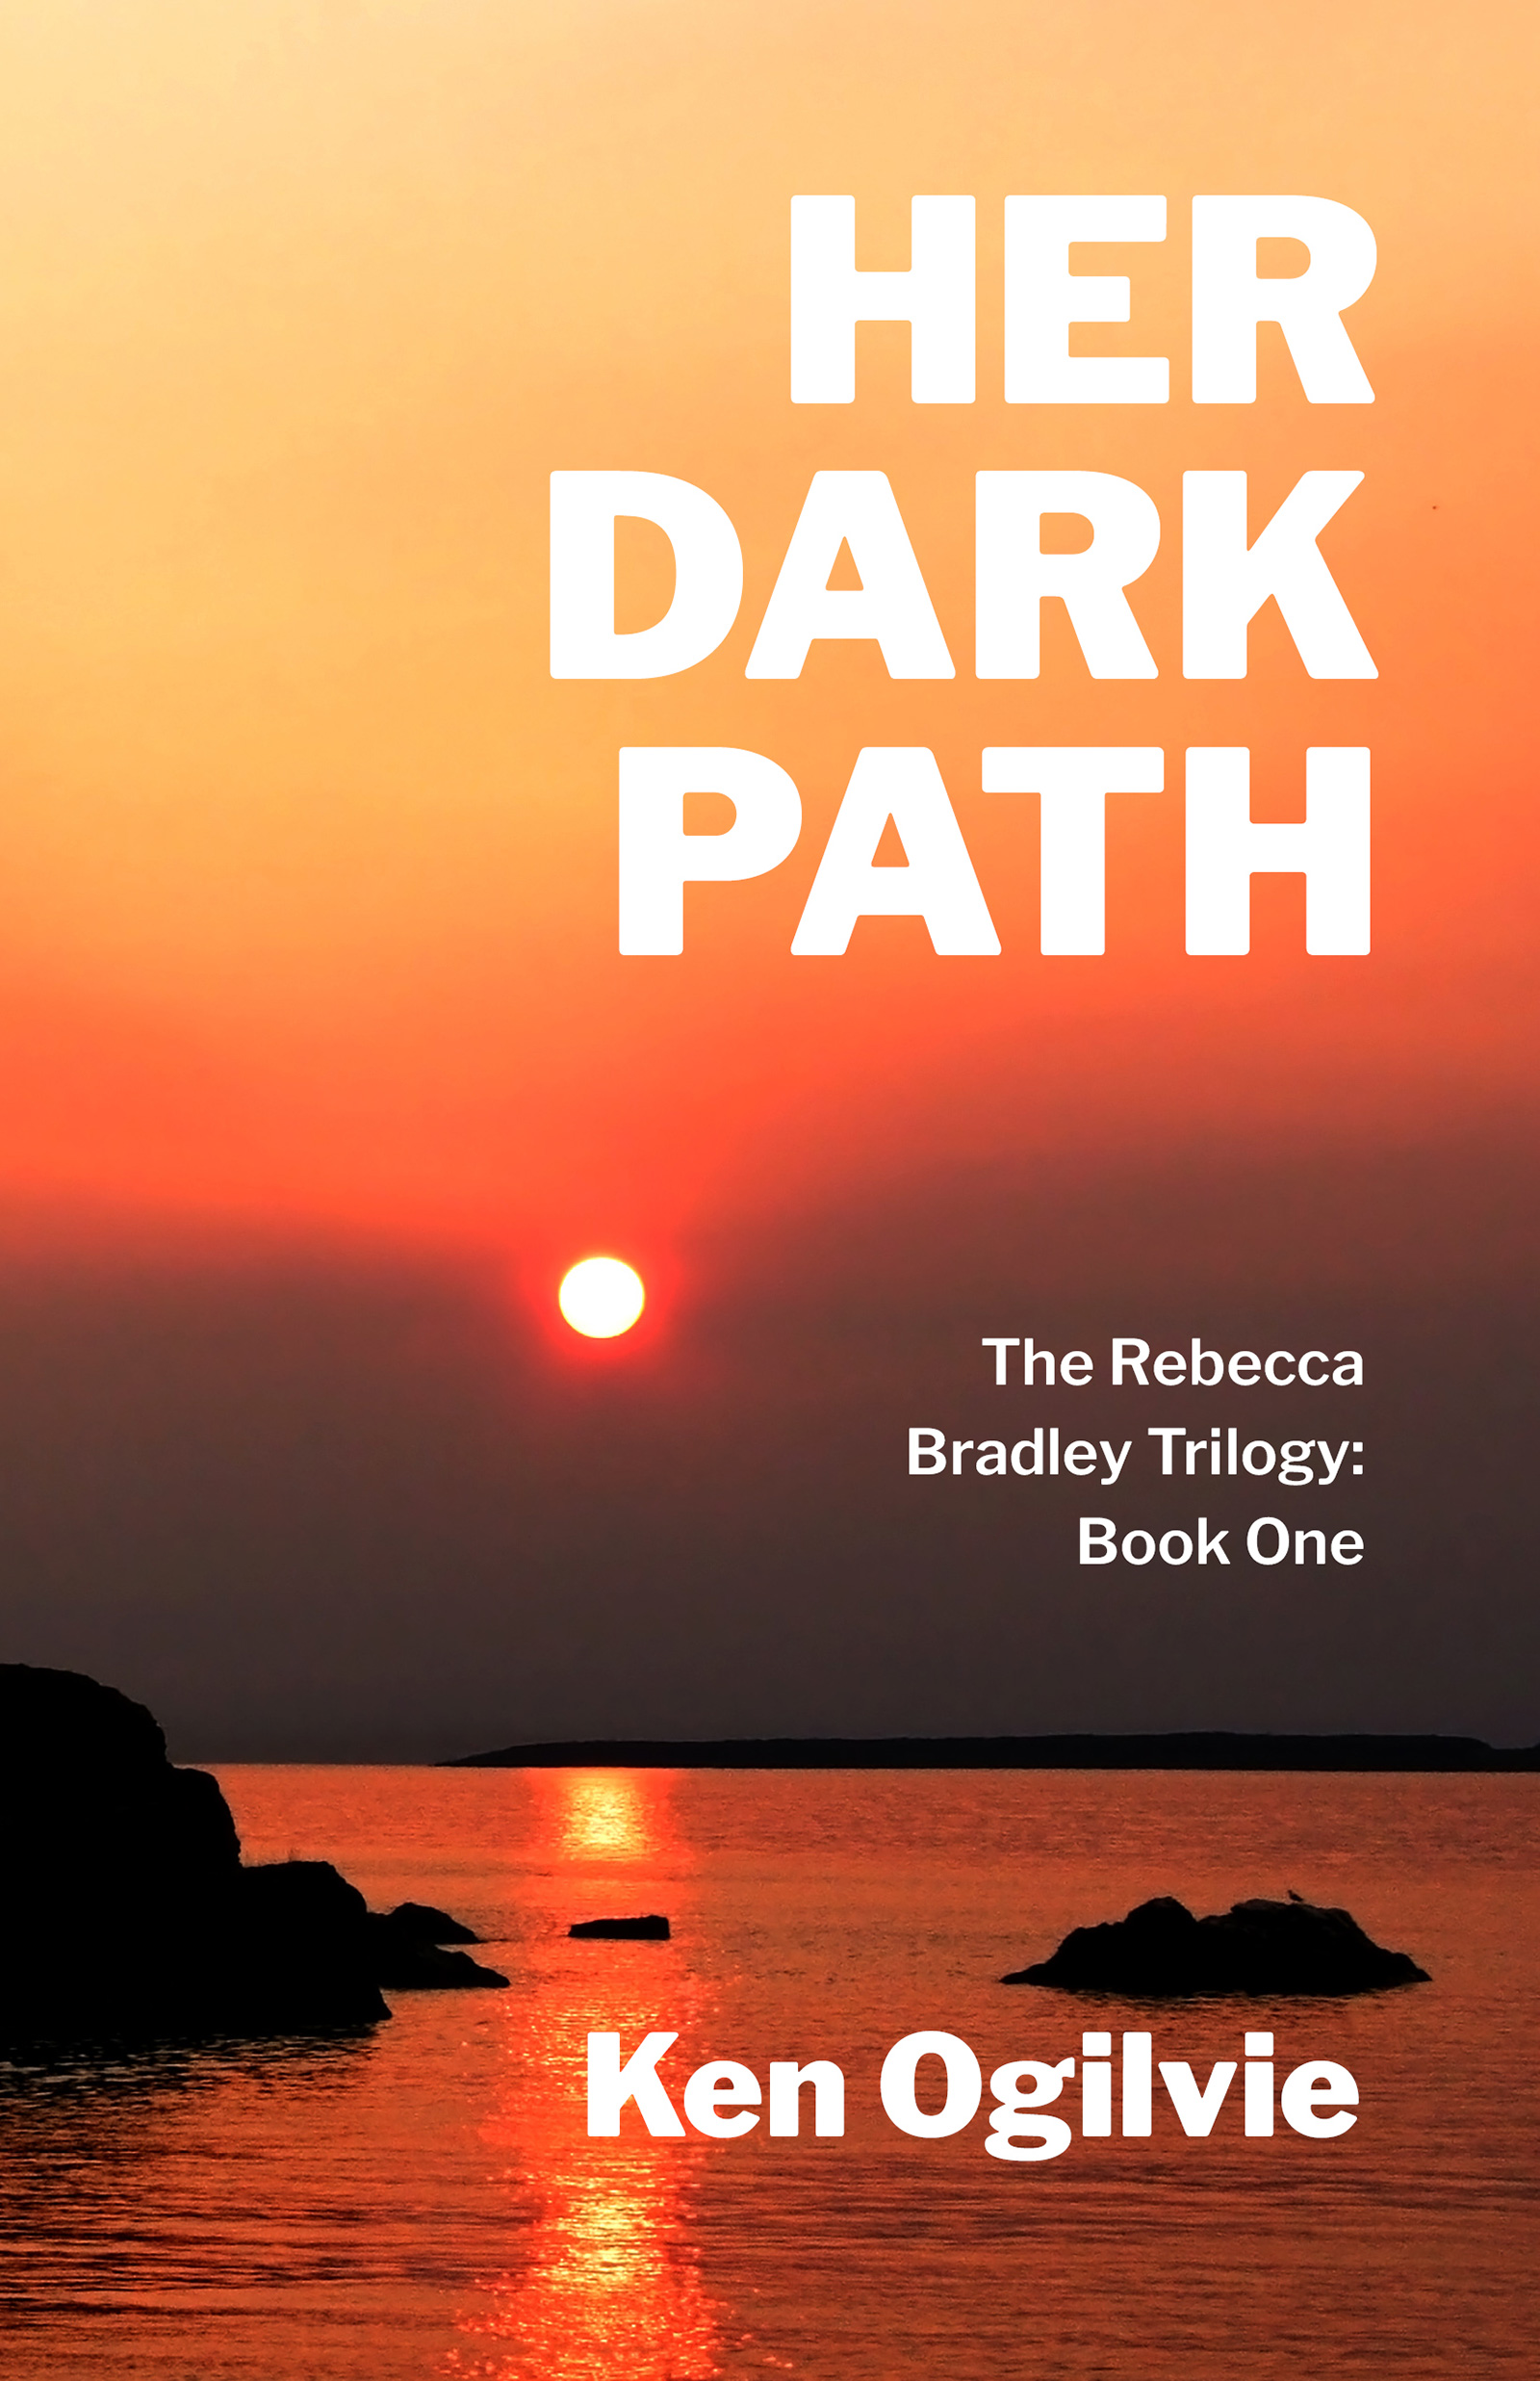 Her Dark Path book cover image